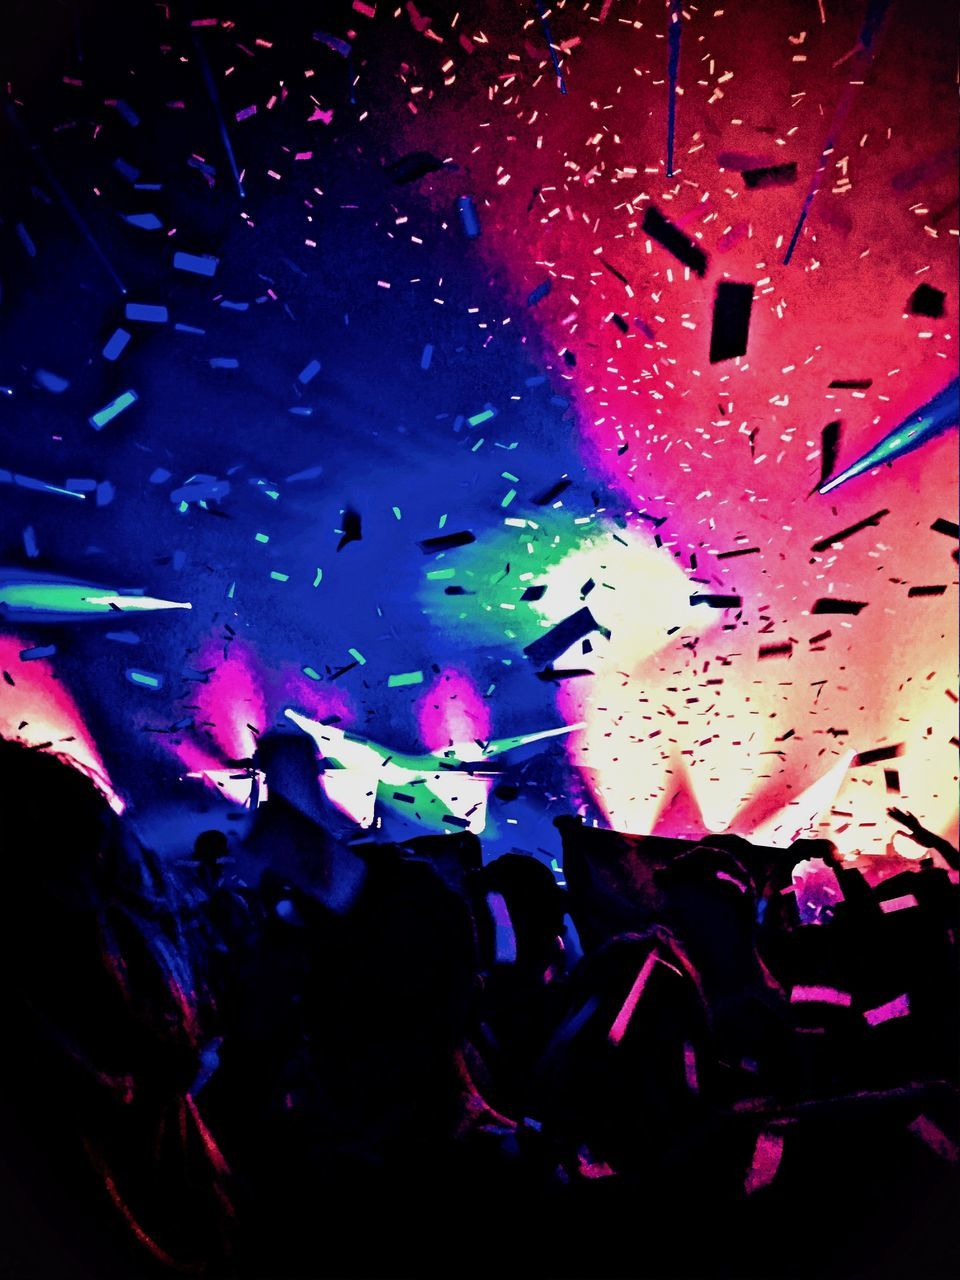 large group of people, arts culture and entertainment, fun, nightlife, enjoyment, multi colored, illuminated, crowd, confetti, real people, indoors, night, leisure activity, excitement, celebration, performance, music, men, popular music concert, nightclub, audience, close-up, people